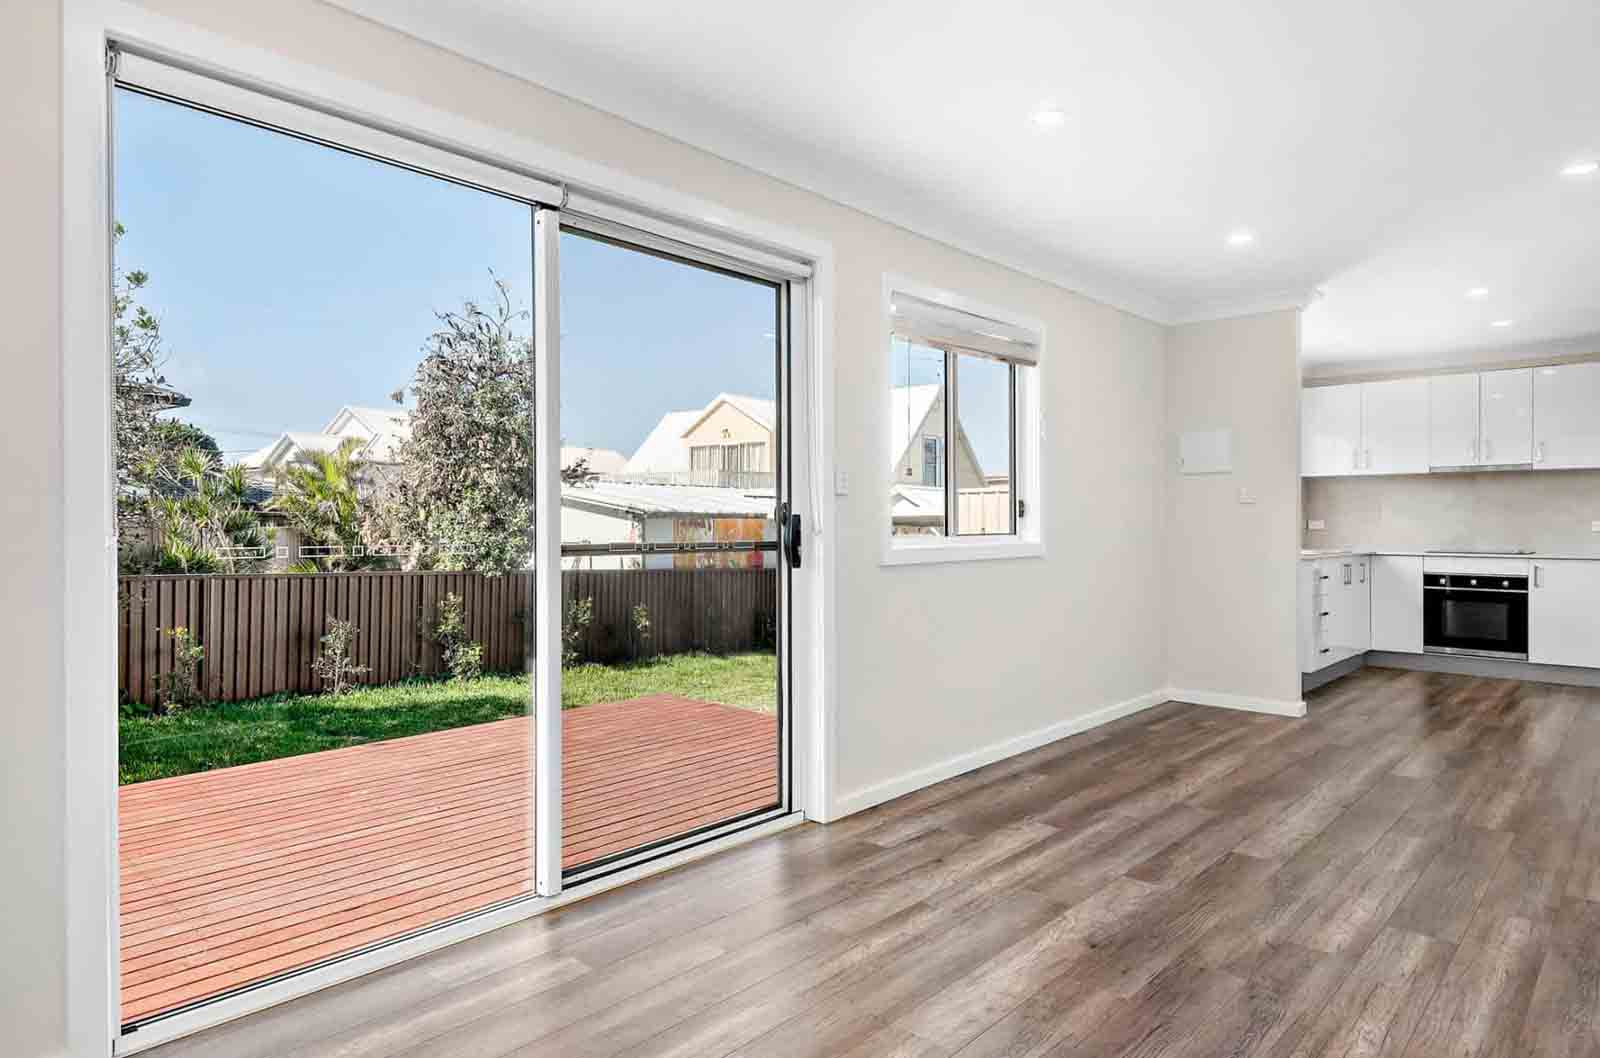 2 bedroom granny flat in Newcastle